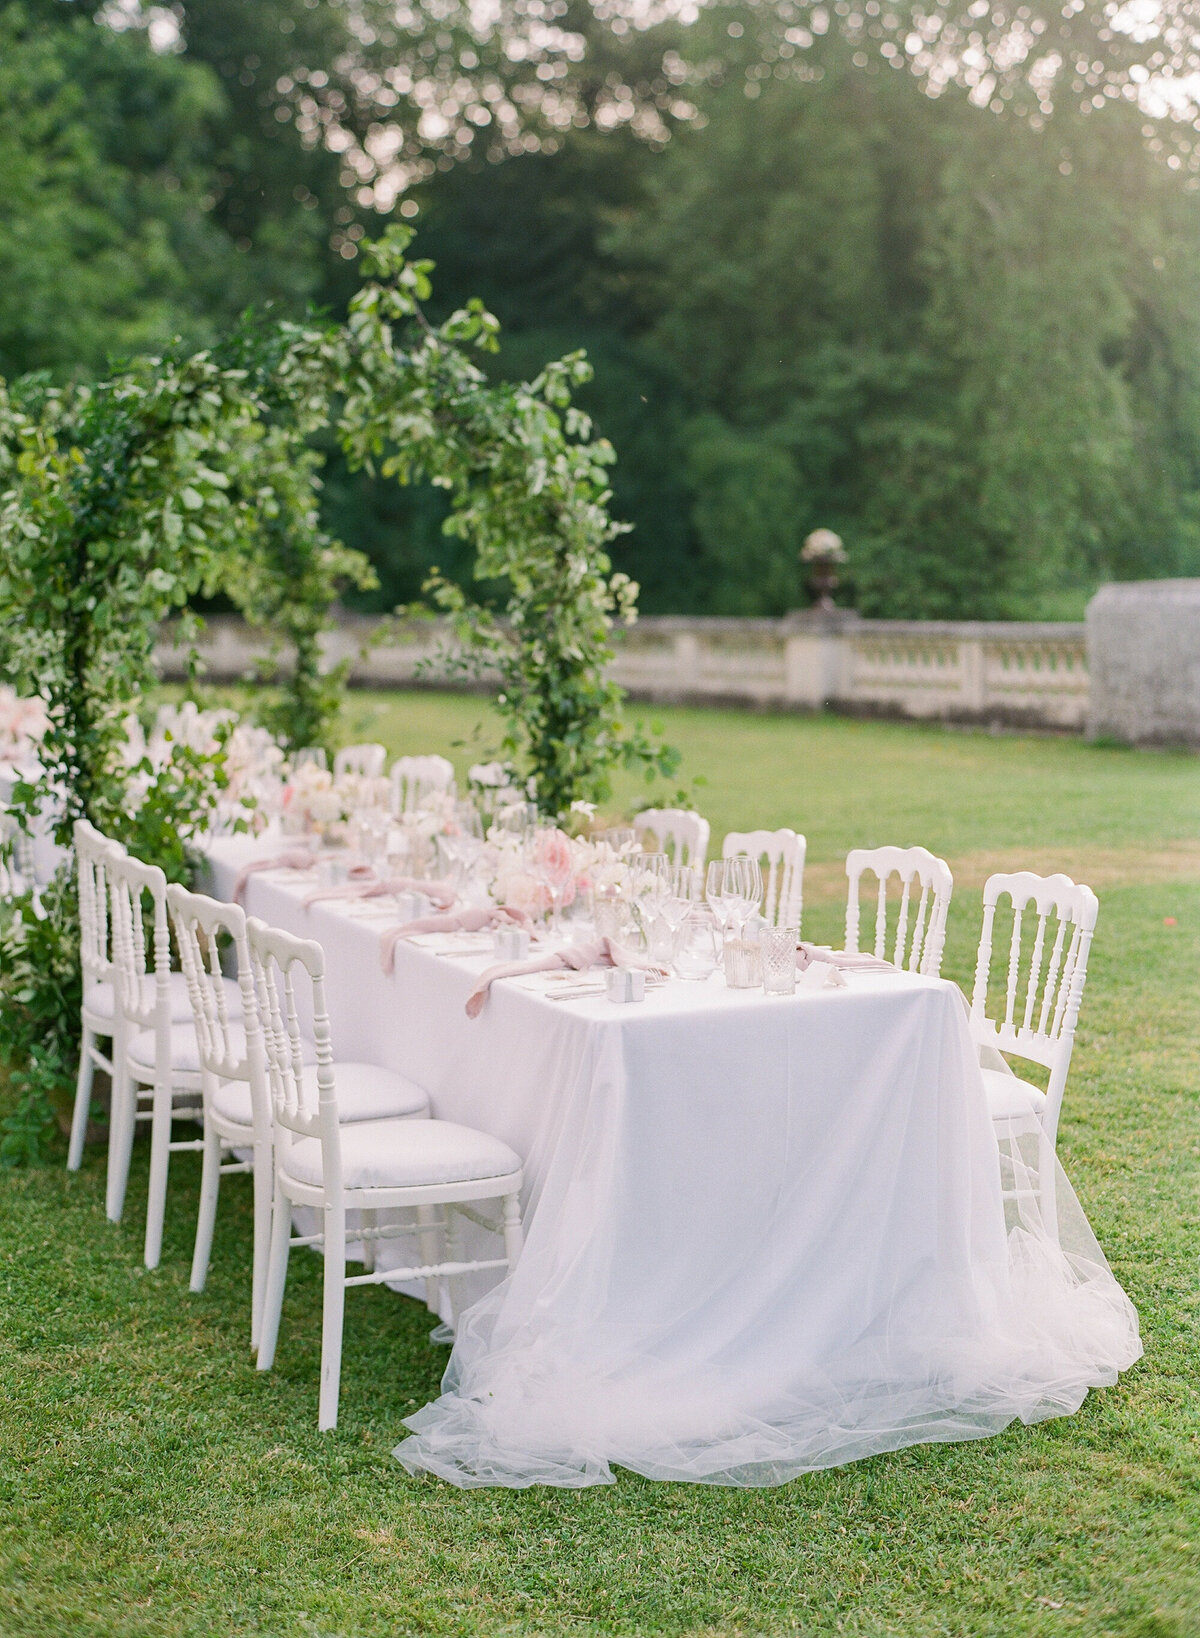 Garden_chateau_wedding